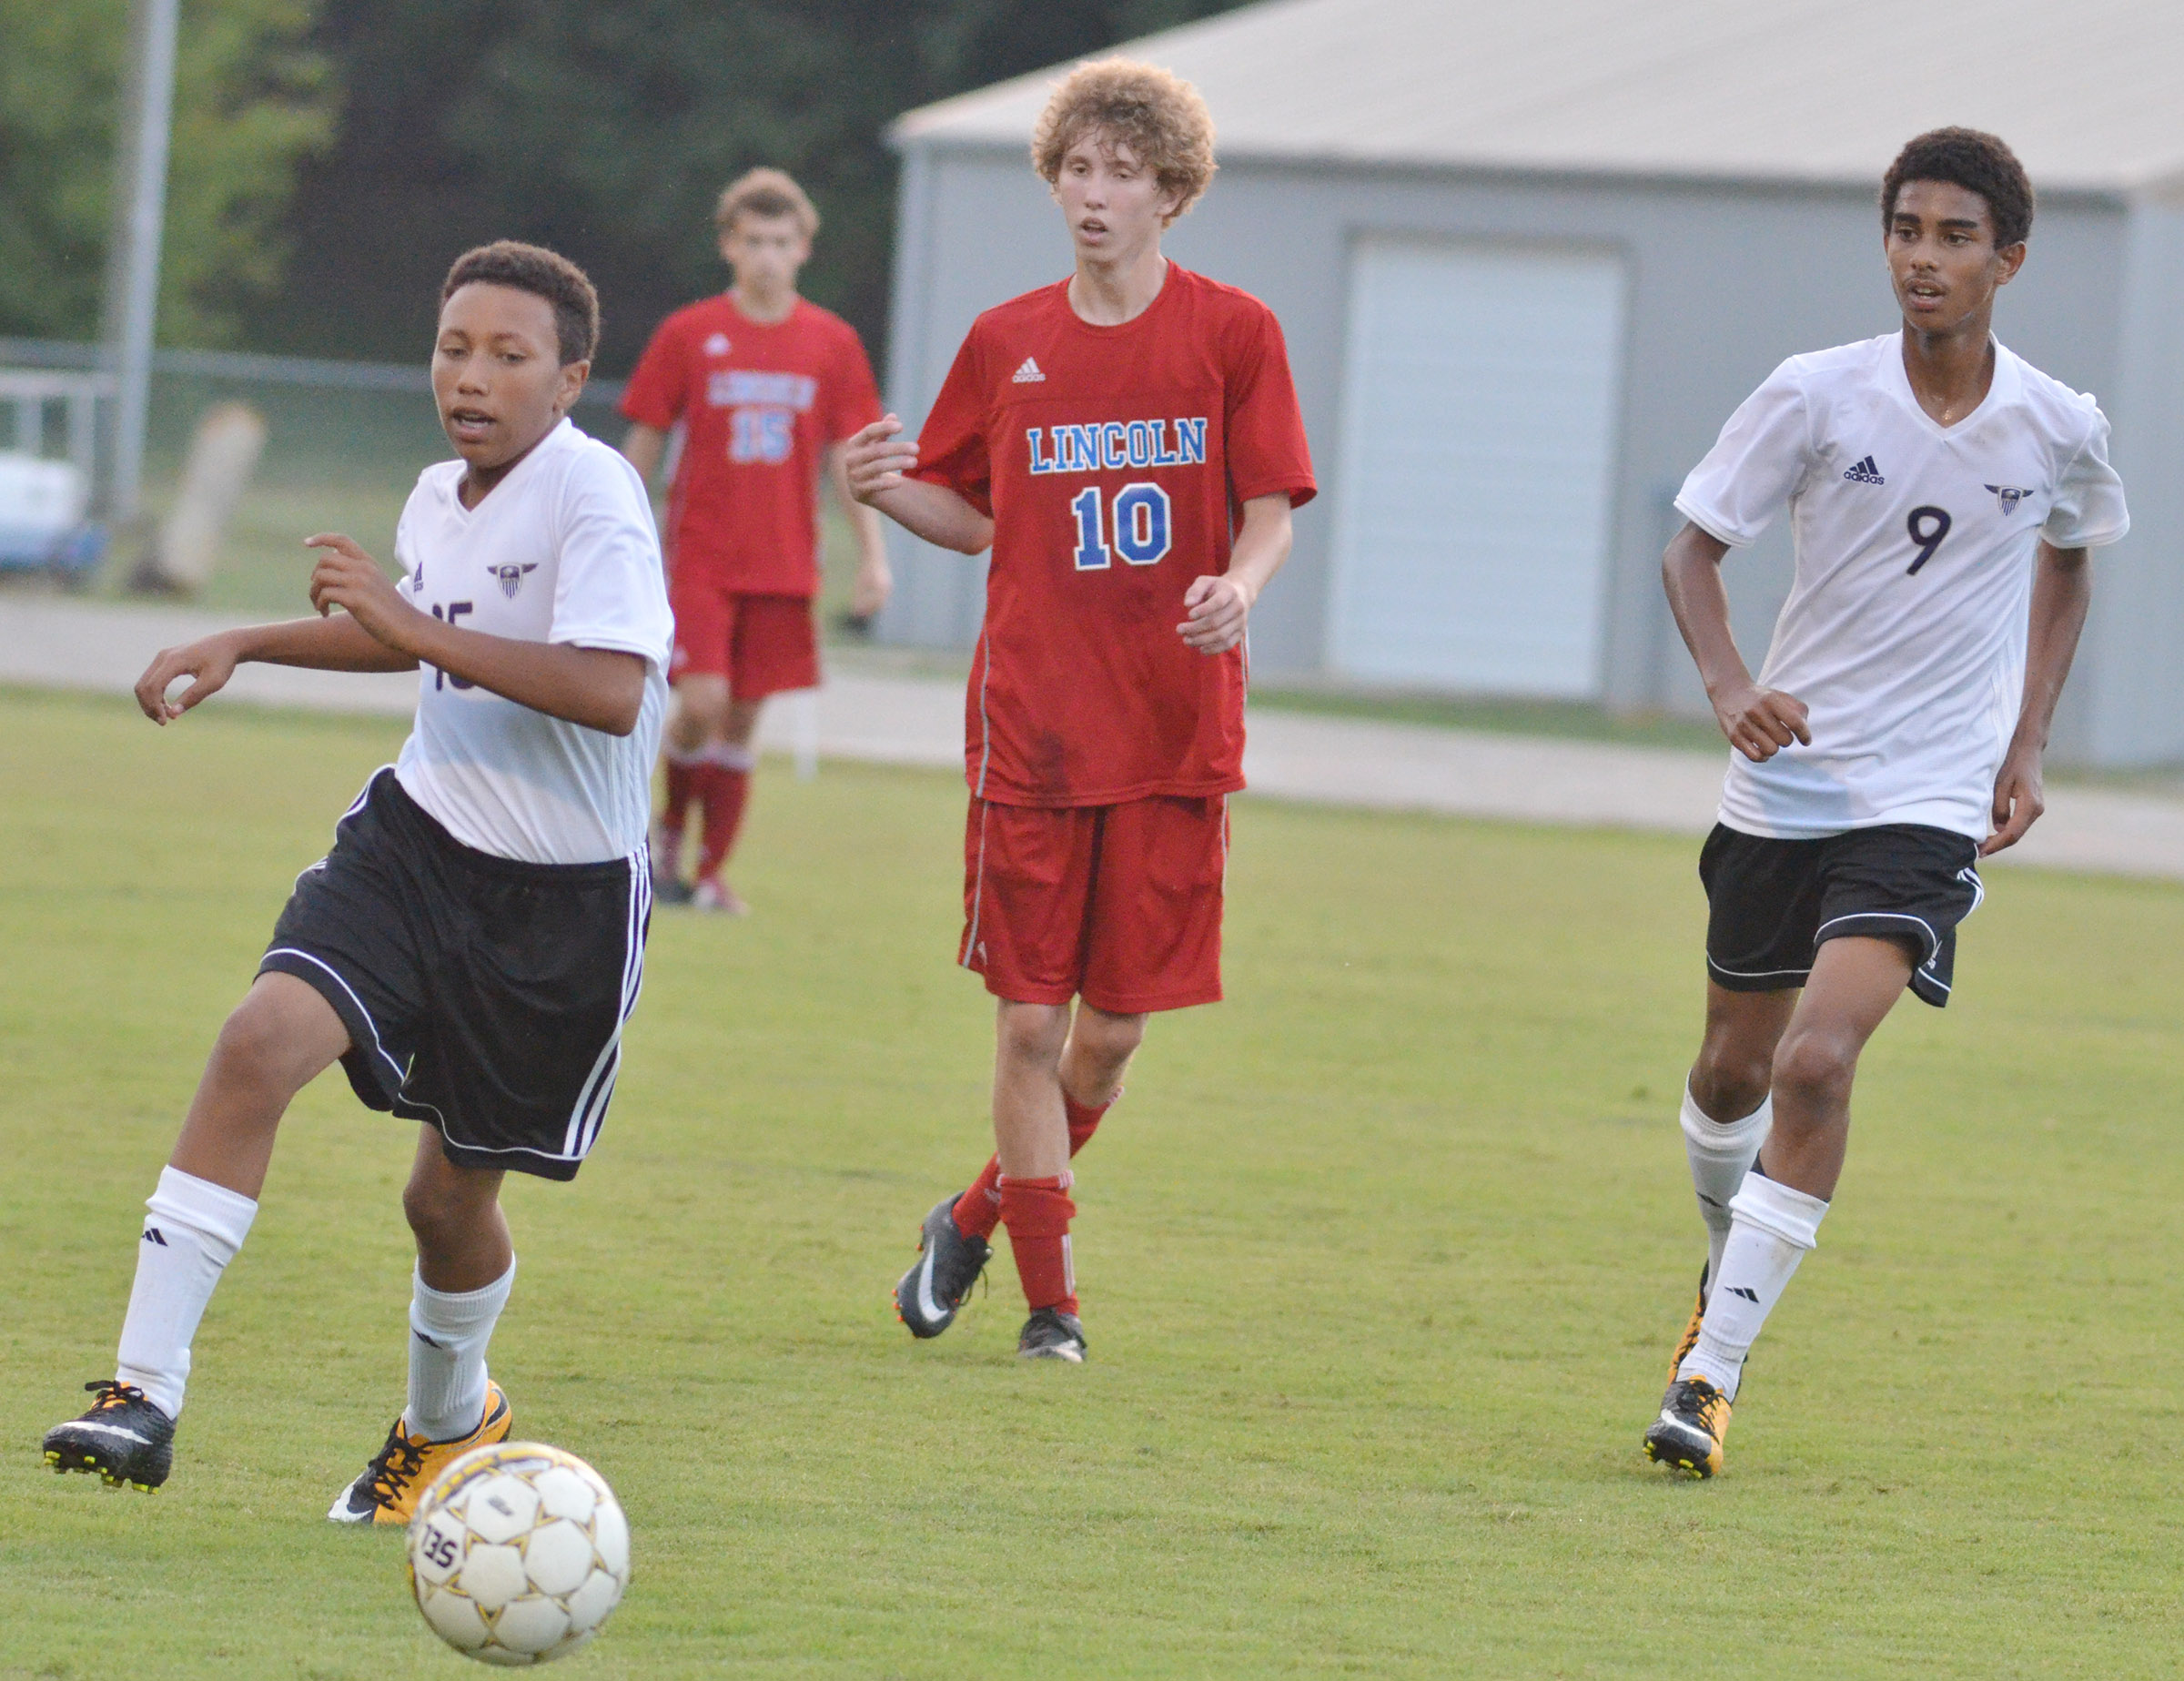 CHS freshman Jastyn Shively, at left, and sophomore David Silva run to the ball.